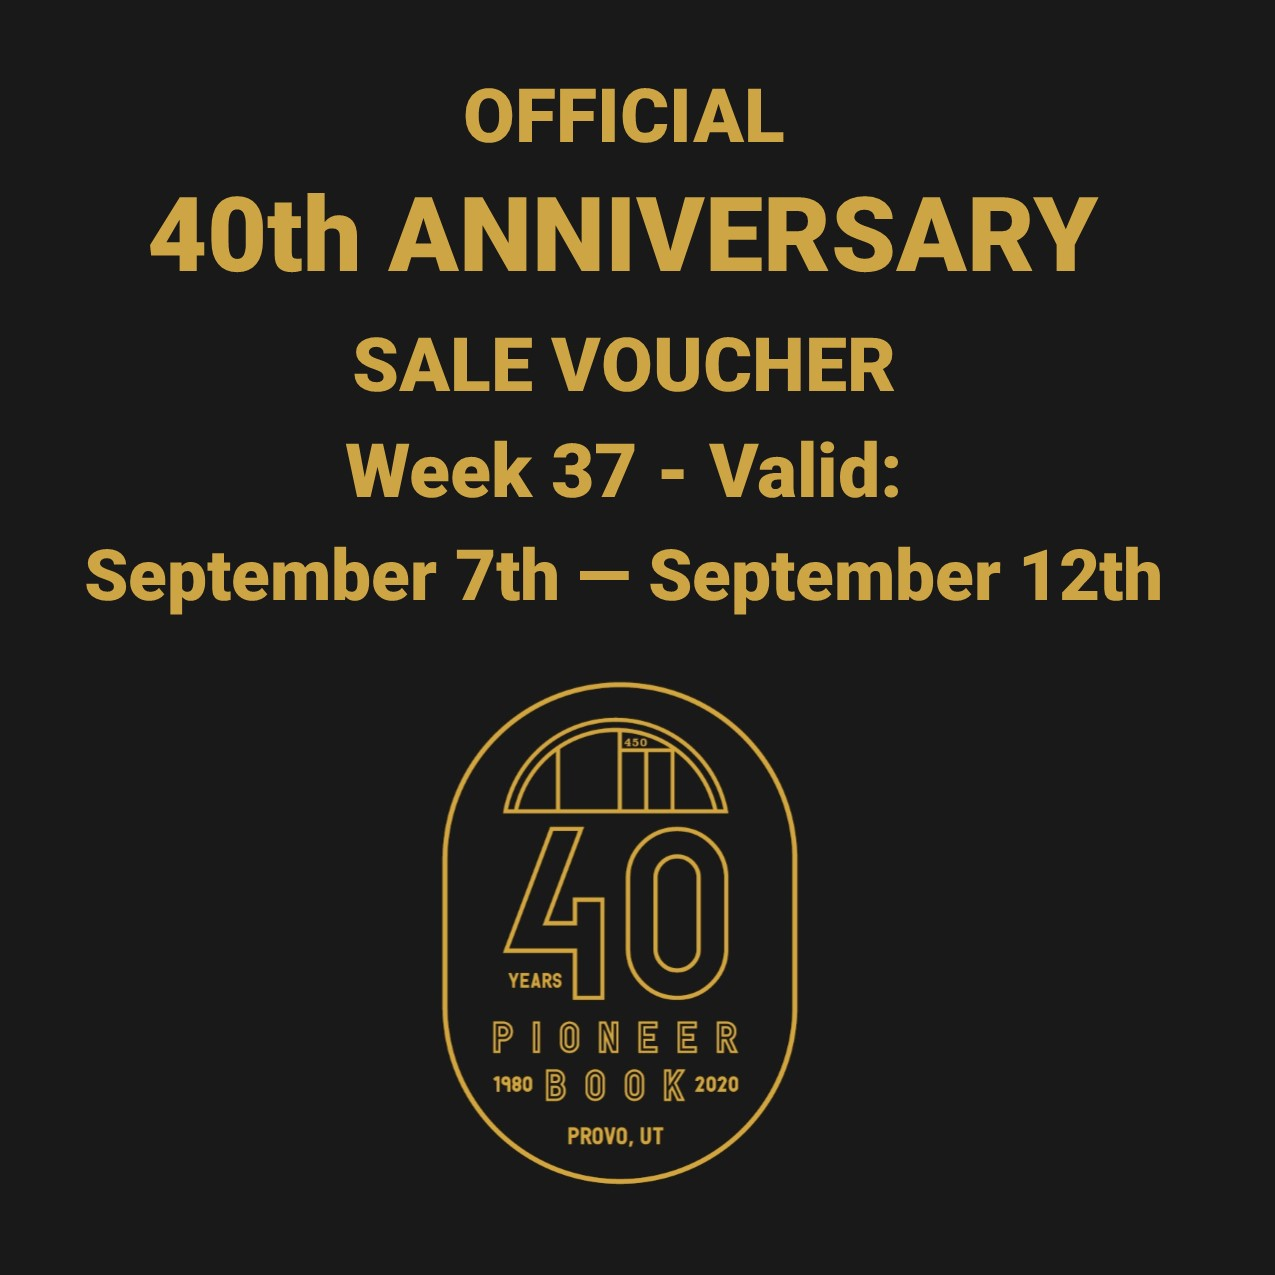 Image for 40th Anniversary Sale! Voucher - Week 37: September 7th - September 12th